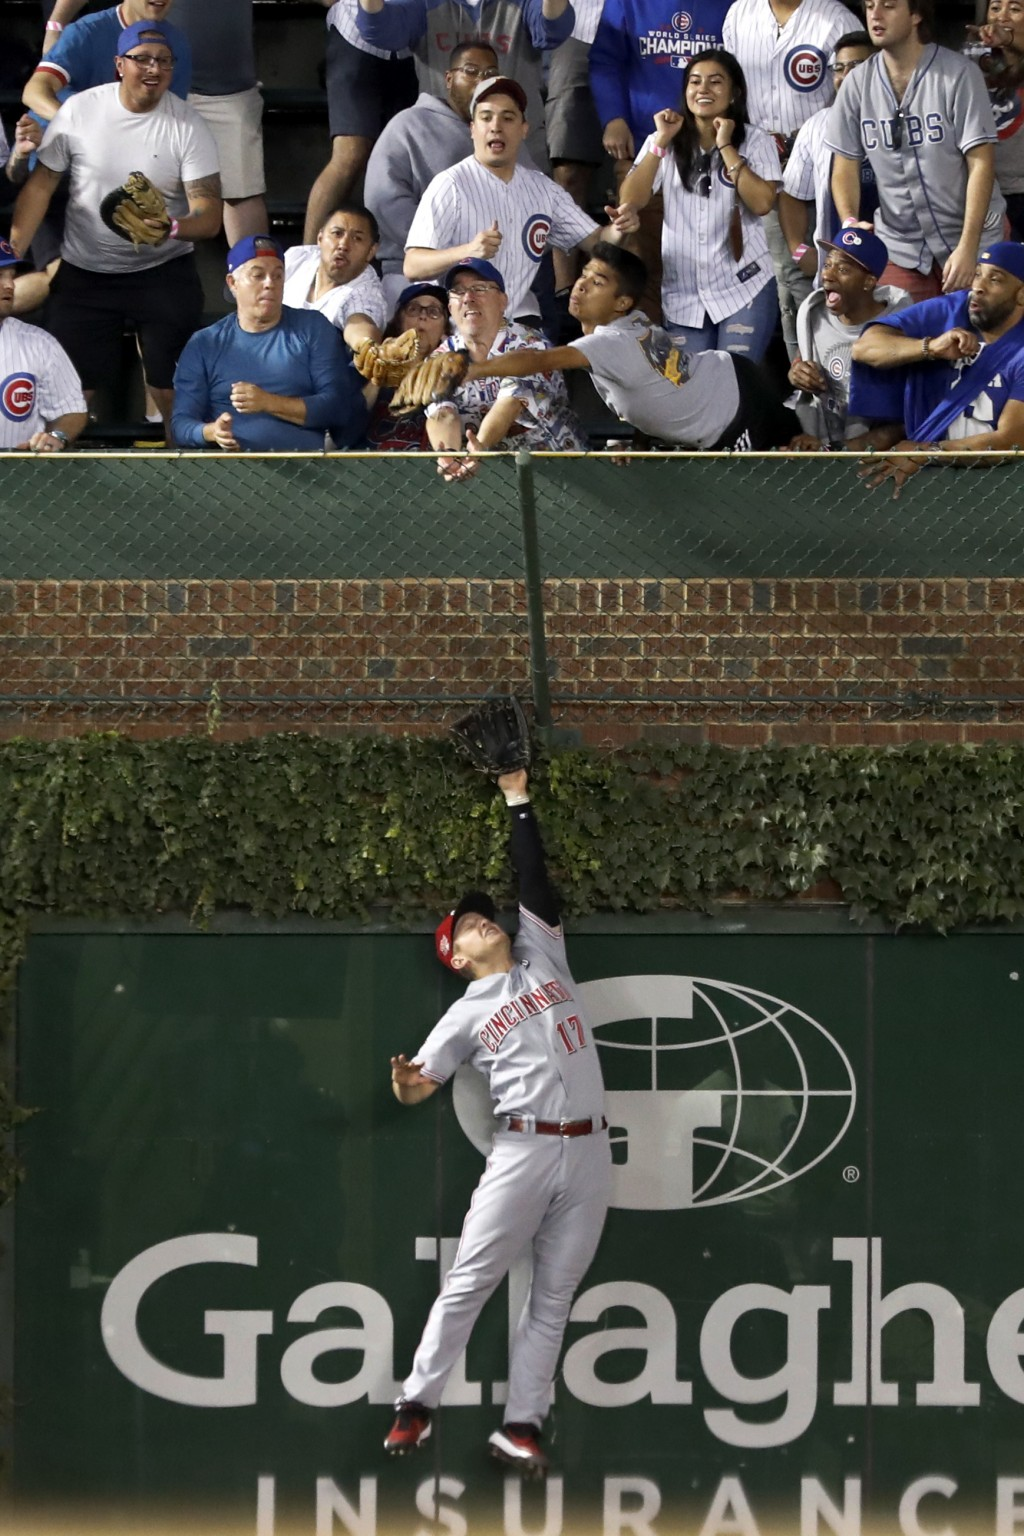 A fan catches a home run by Chicago Cubs' Willson Contreras as Cincinnati Reds' Josh VanMeter leaps for the ball during the seventh inning of a baseba...